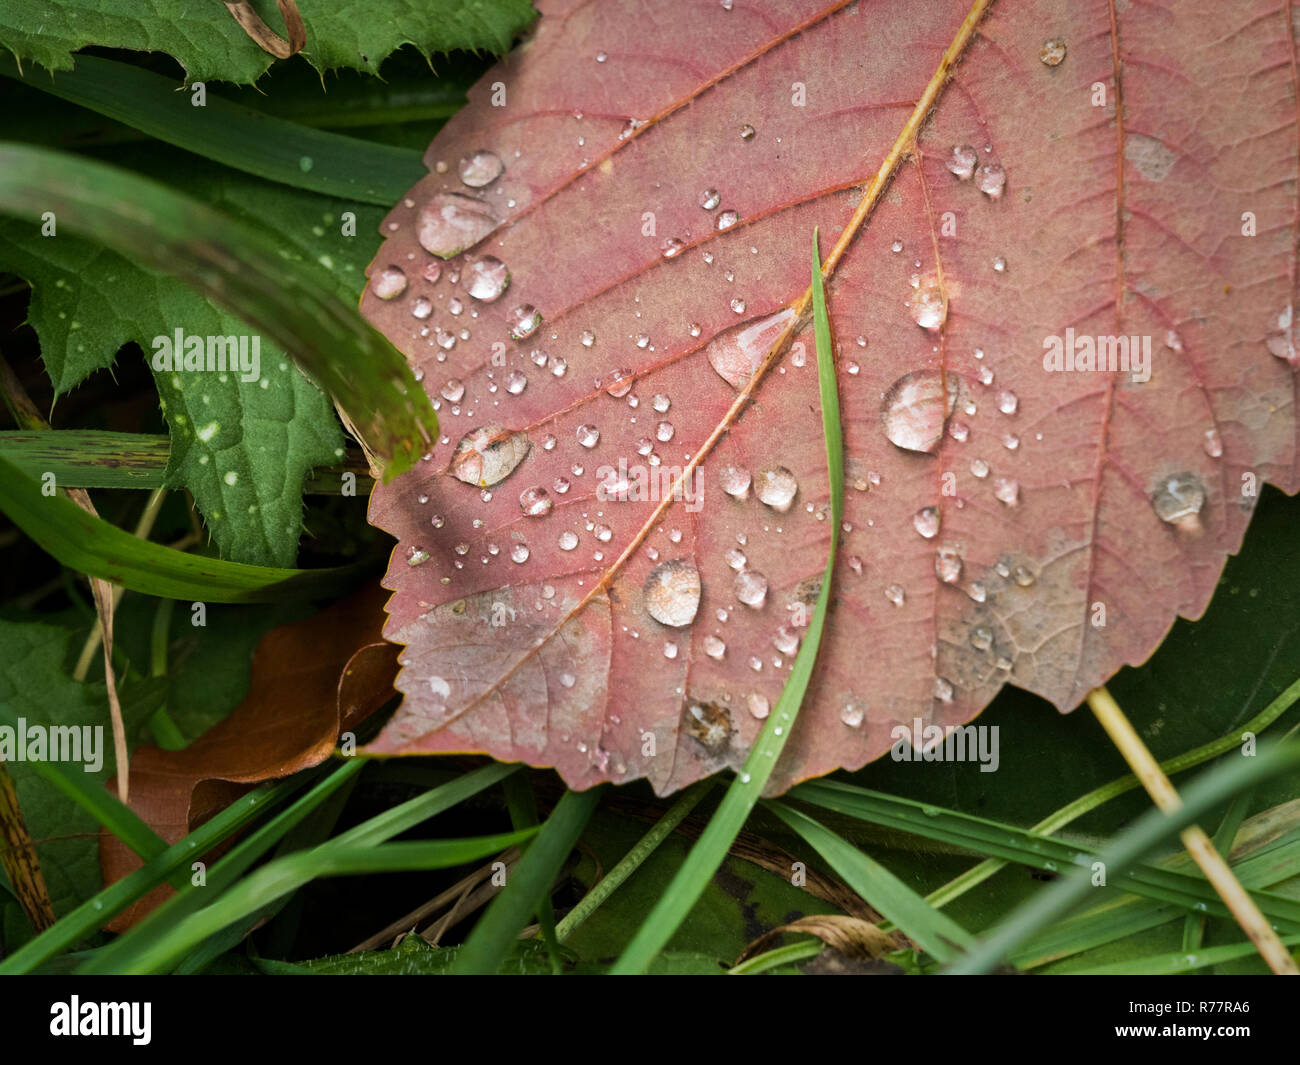 Close-up of a red leaf with raindrops in the grass - Stock Image